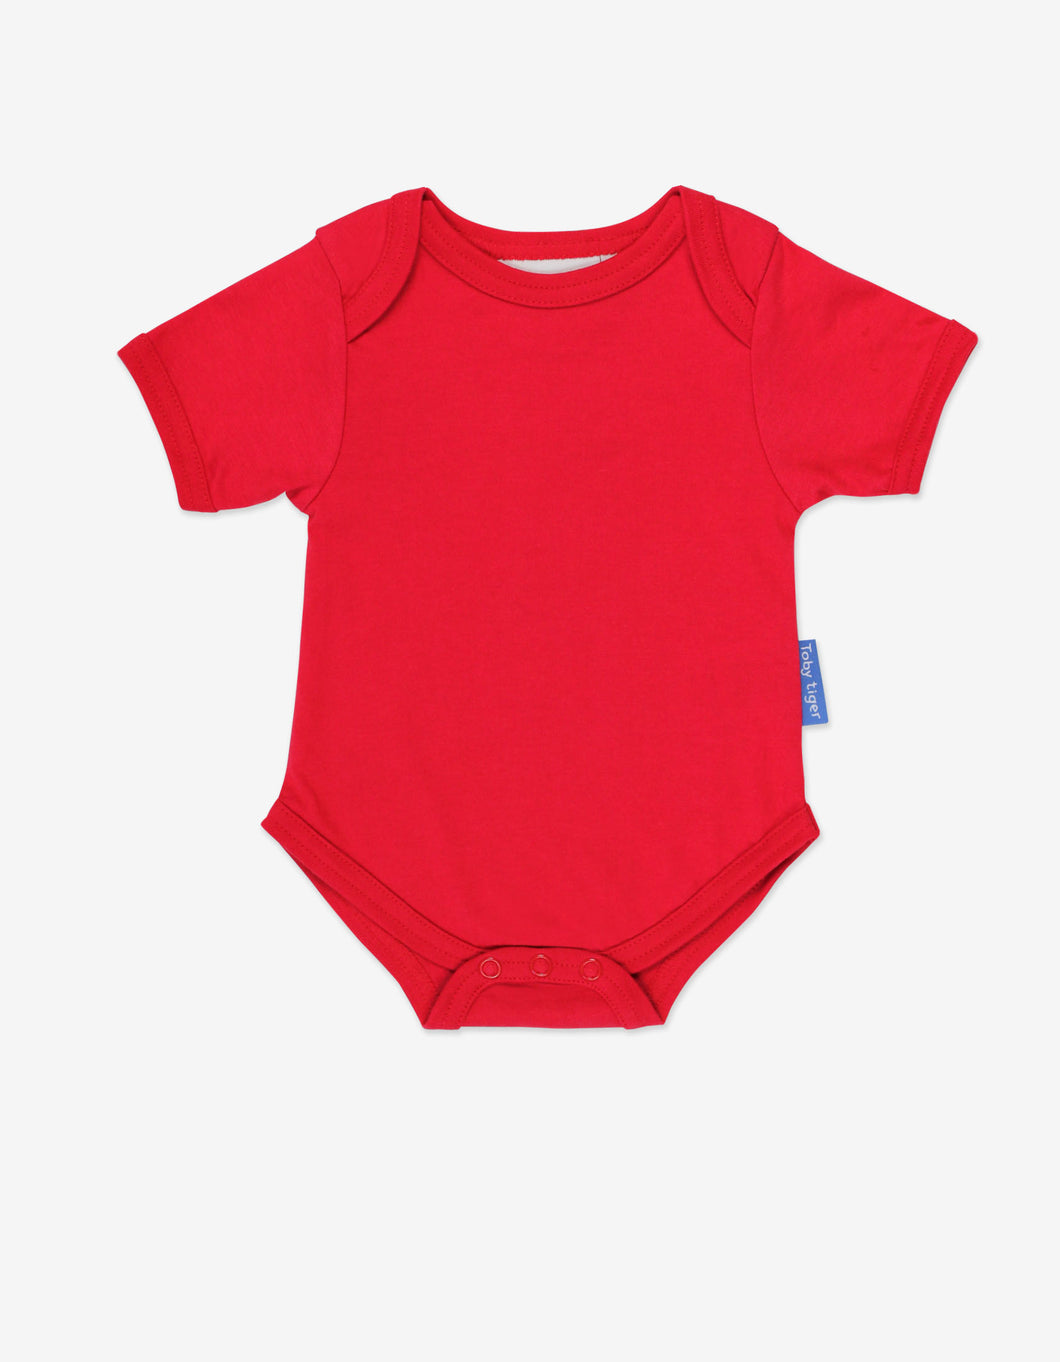 Organic Red Basic Baby Body